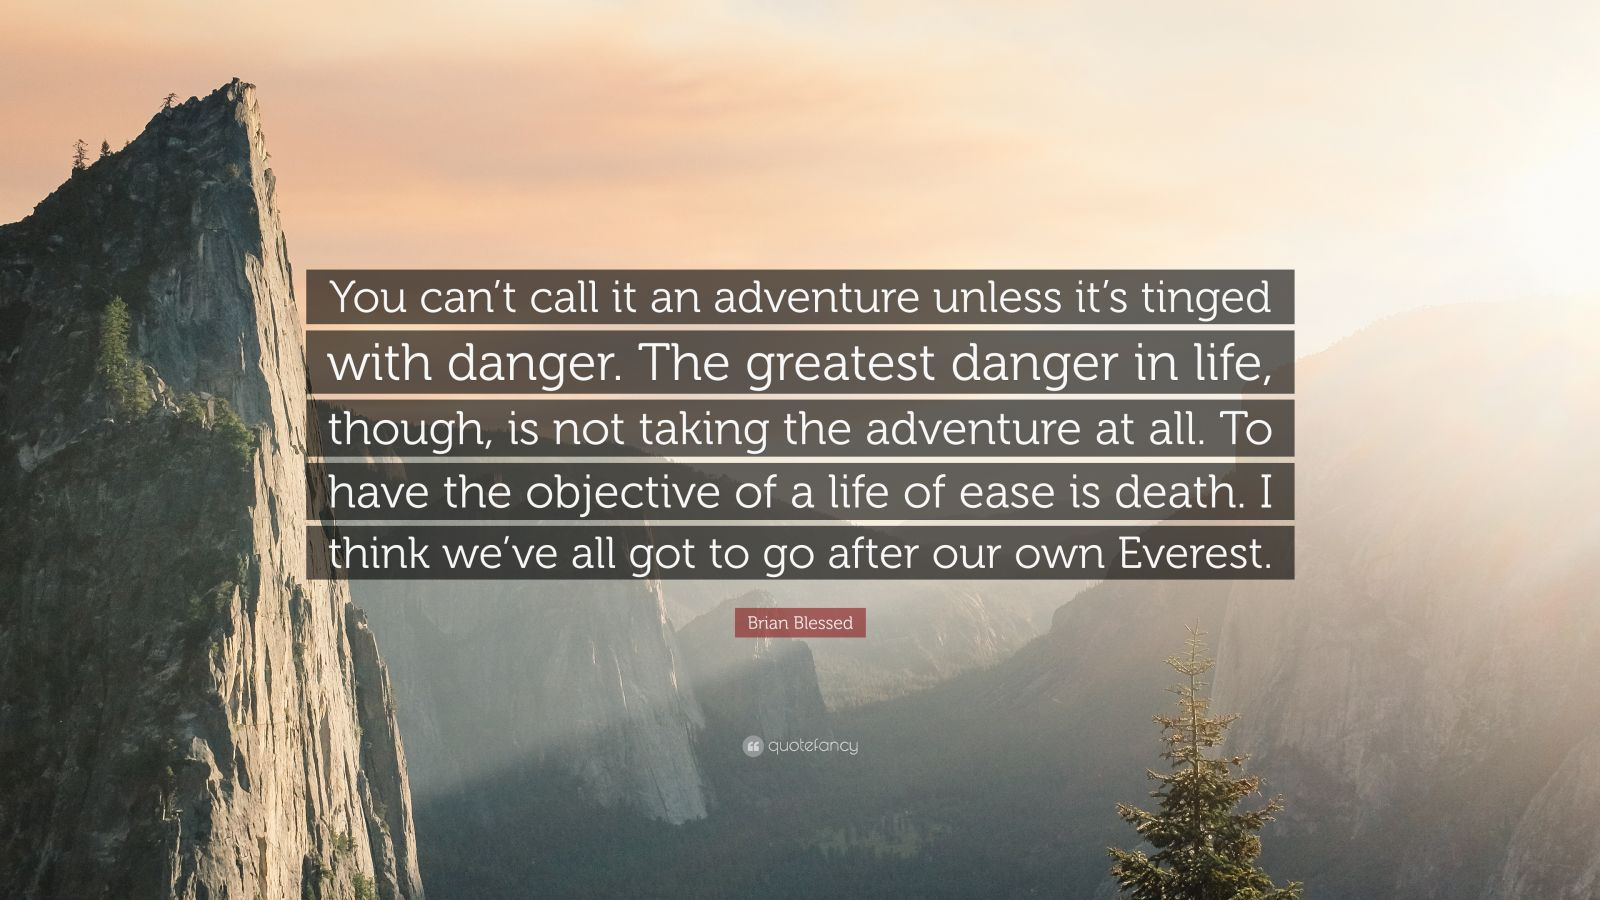 """Brian Blessed Quote: """"You can't call it an adventure unless it's tinged with danger. The greatest danger in life, though, is not taking the adventure at all. To have the objective of a life of ease is death. I think we've all got to go after our own Everest."""""""